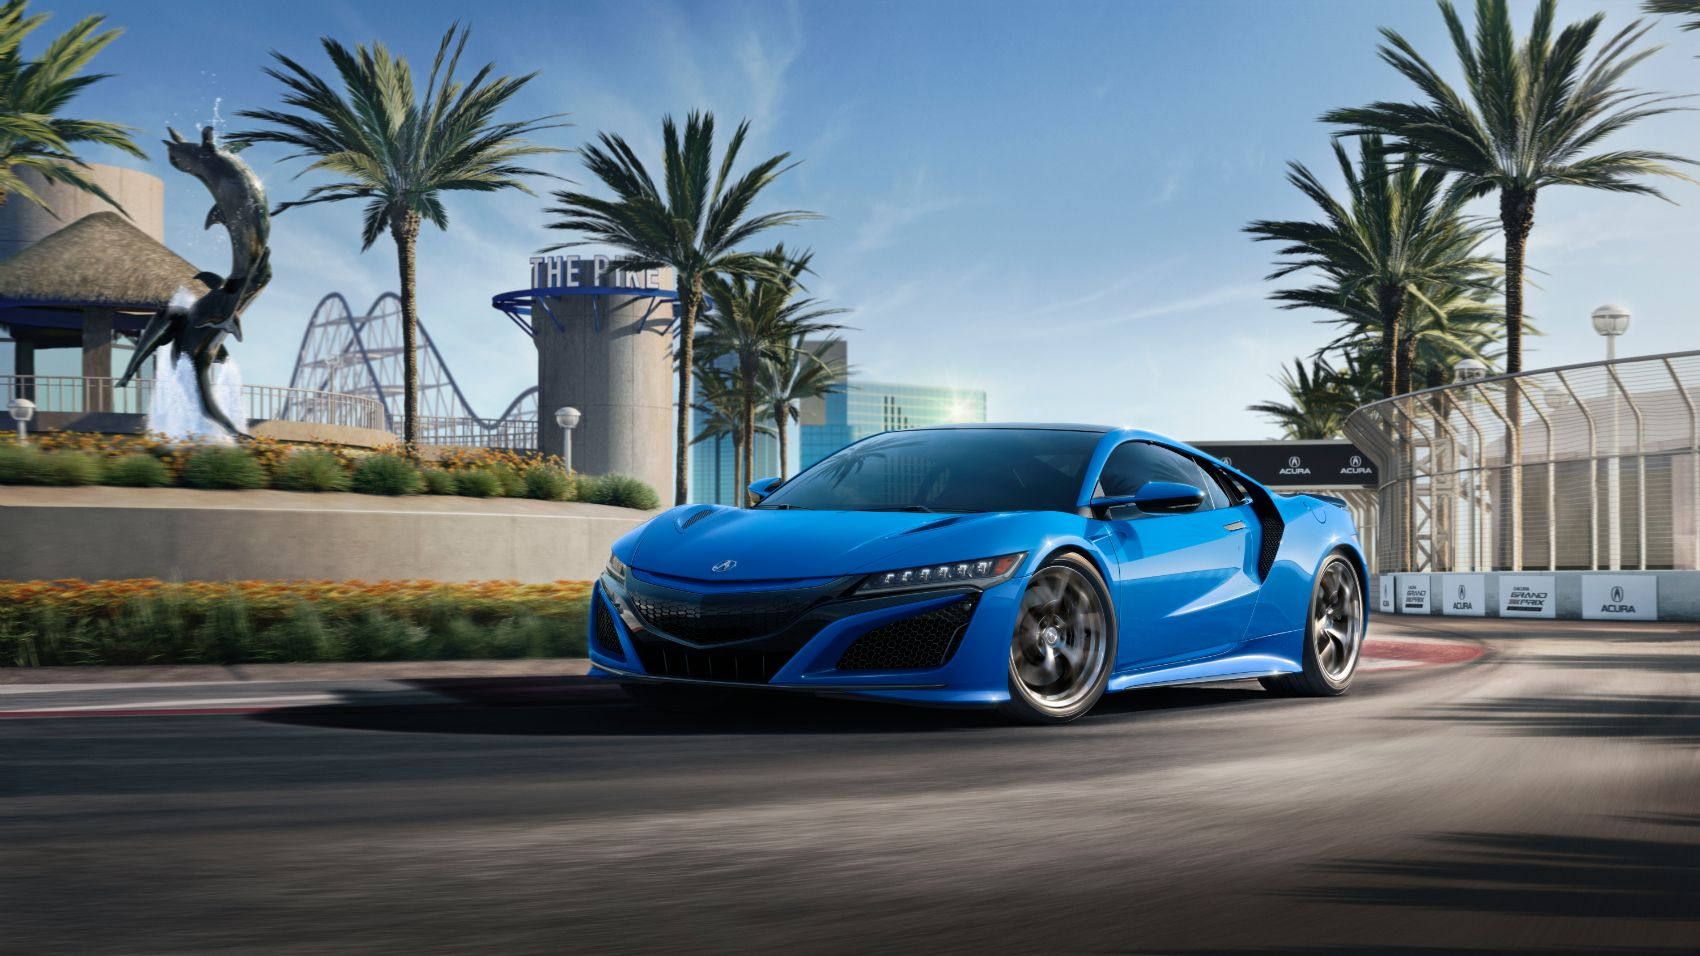 2021 Acura NSX Now Available In a Cool Long Beach Blue Color